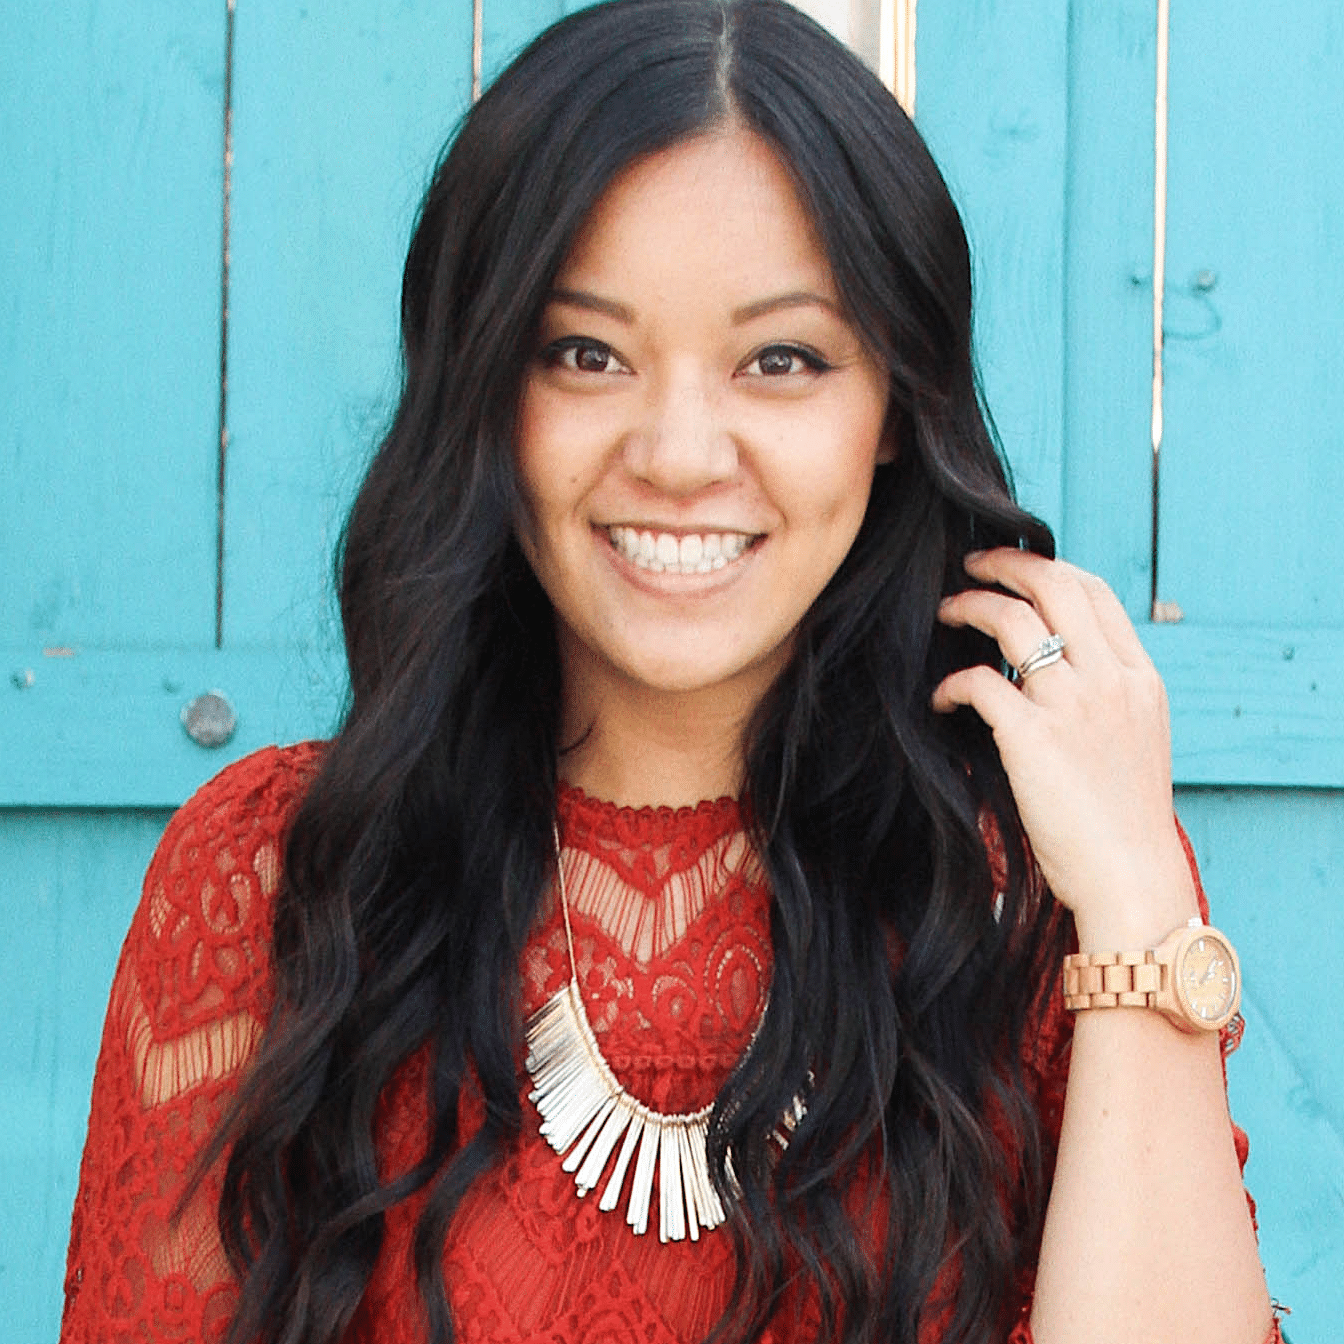 Rust Orange Lace Top + Statement Necklace